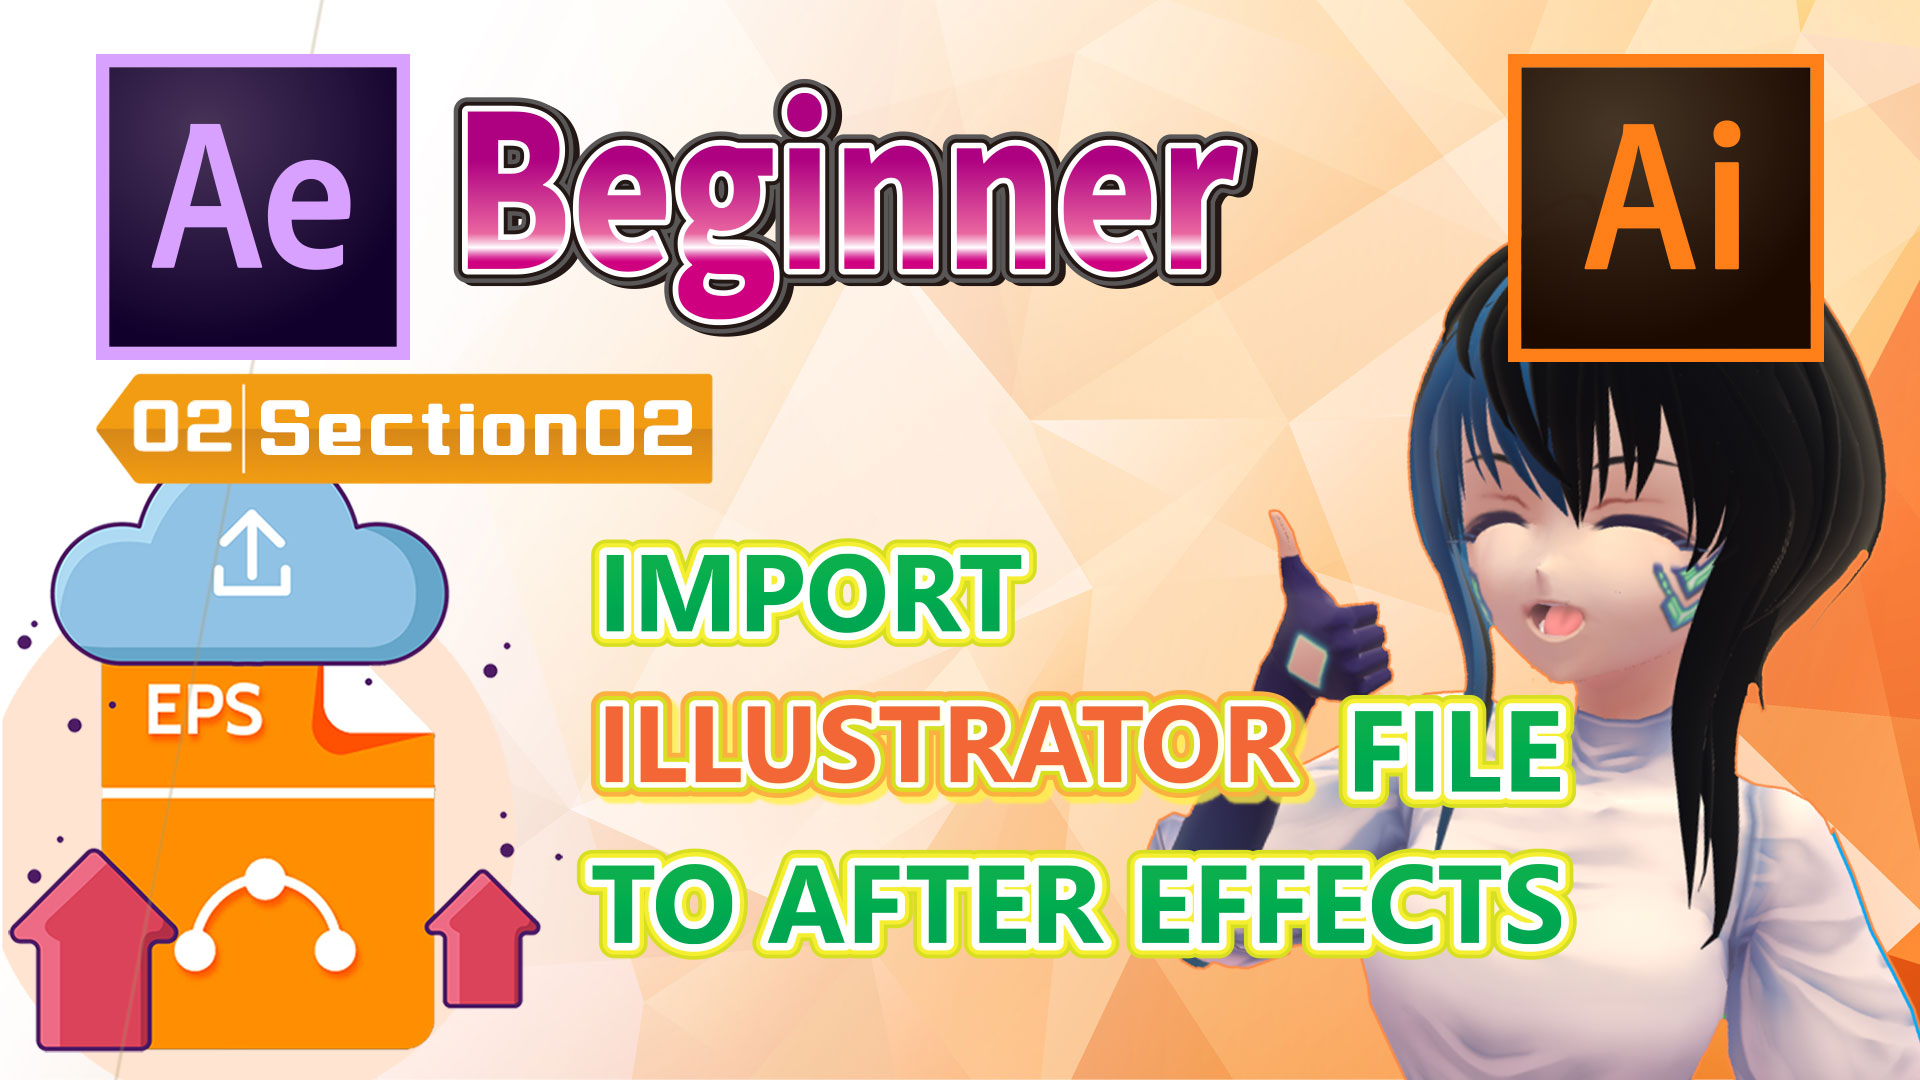 IMPORT ILLUSTRATOR FILE TO AFTER EFFECTS